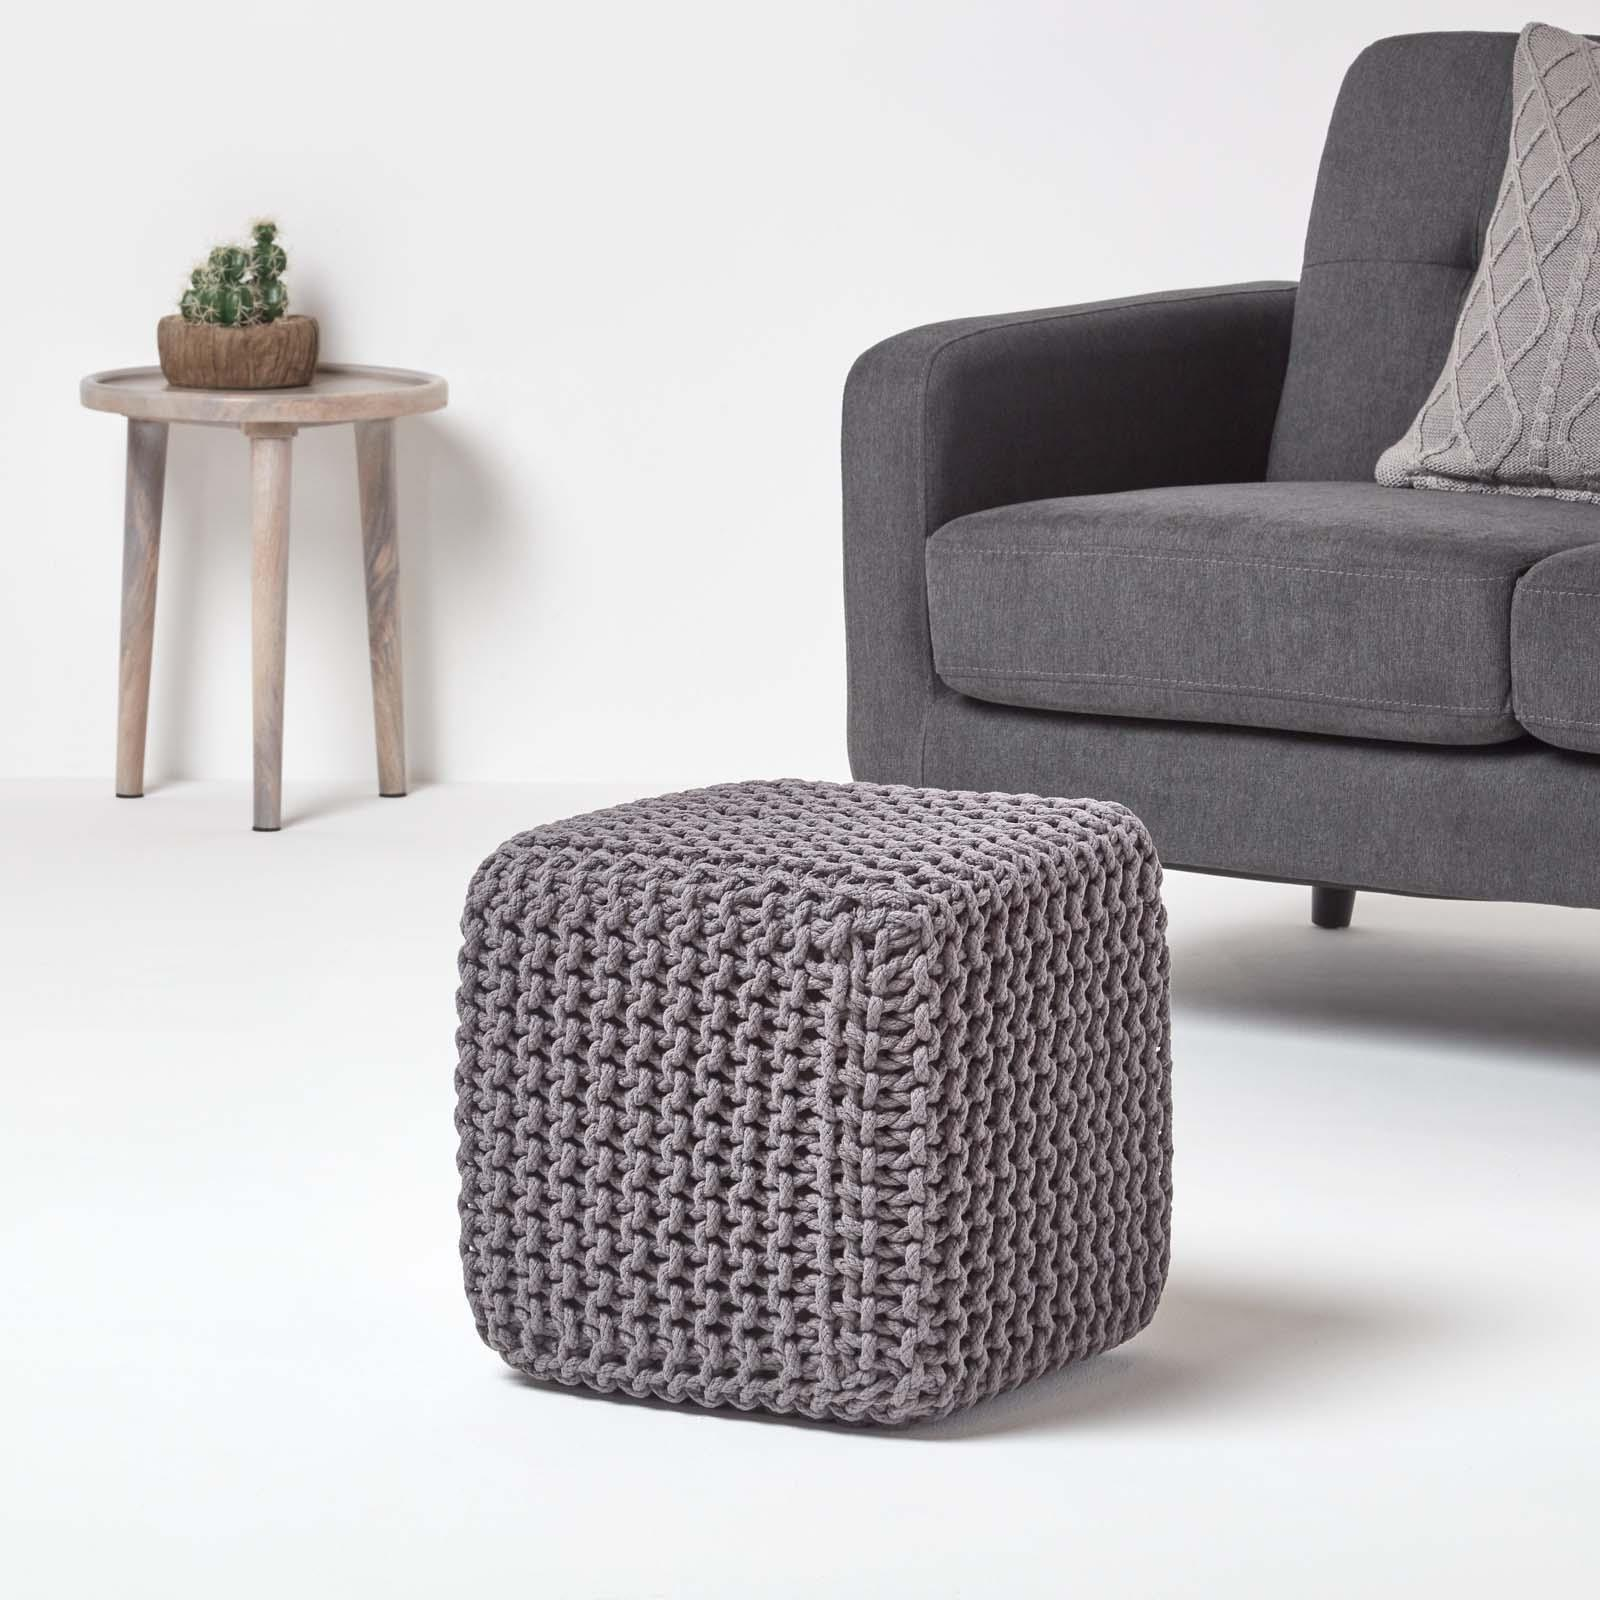 Hand-Knitted-100-Cotton-Pouffes-Round-Sphere-Or-Cube-Square-Chunky-Footstools thumbnail 52